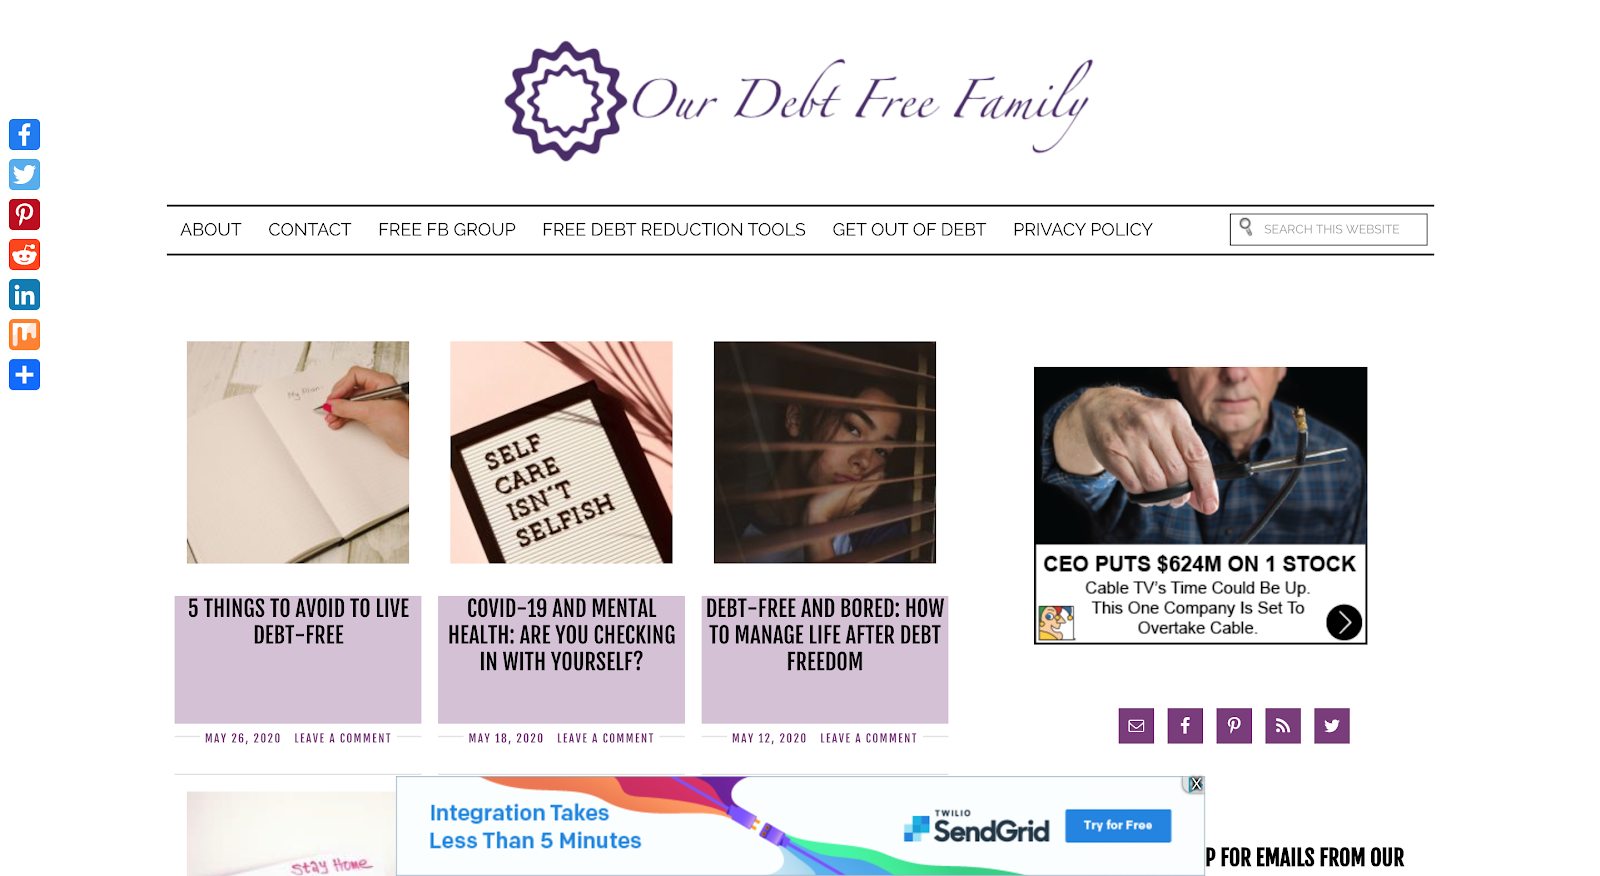 Our Debt Free Family interface